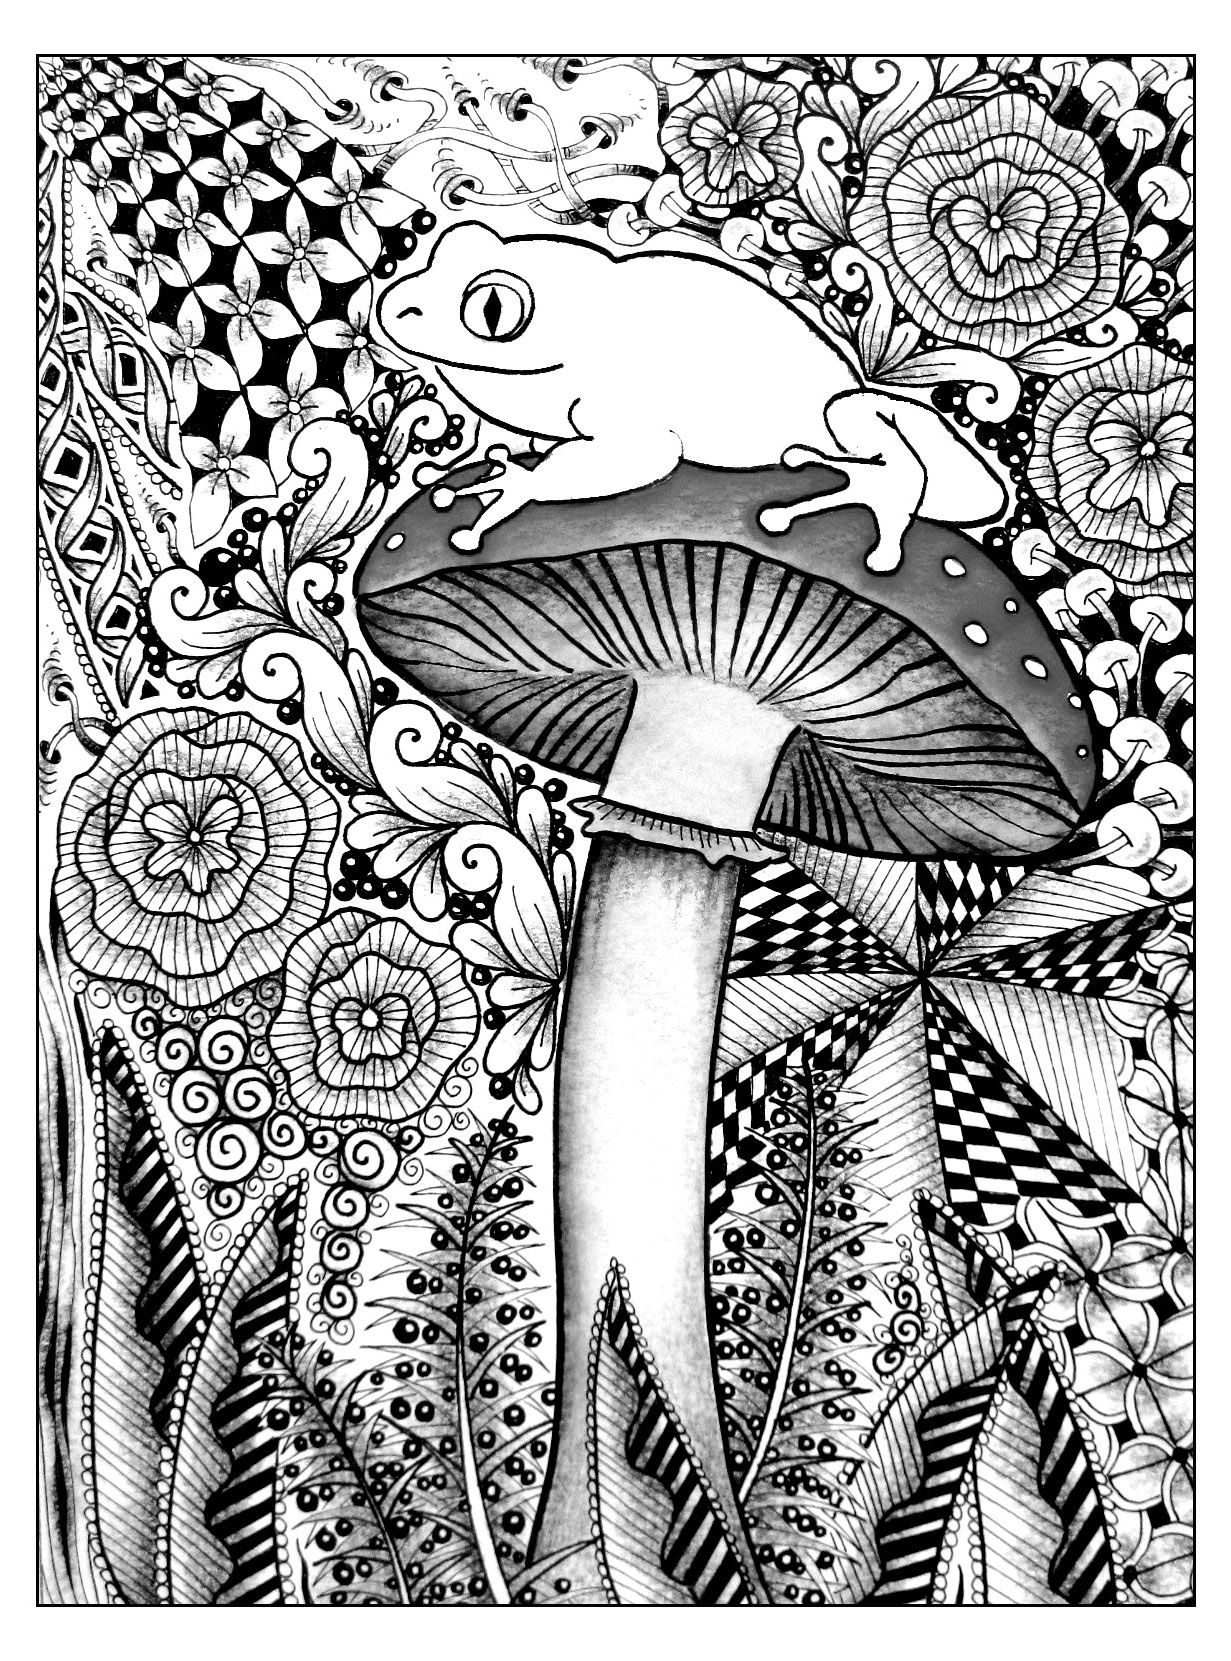 Coloring pages for adults cute - Free Coloring Pages Coloring Forest Frog A Cute Frog On The Top Of A Mushroom So Many Different Styles To Choose